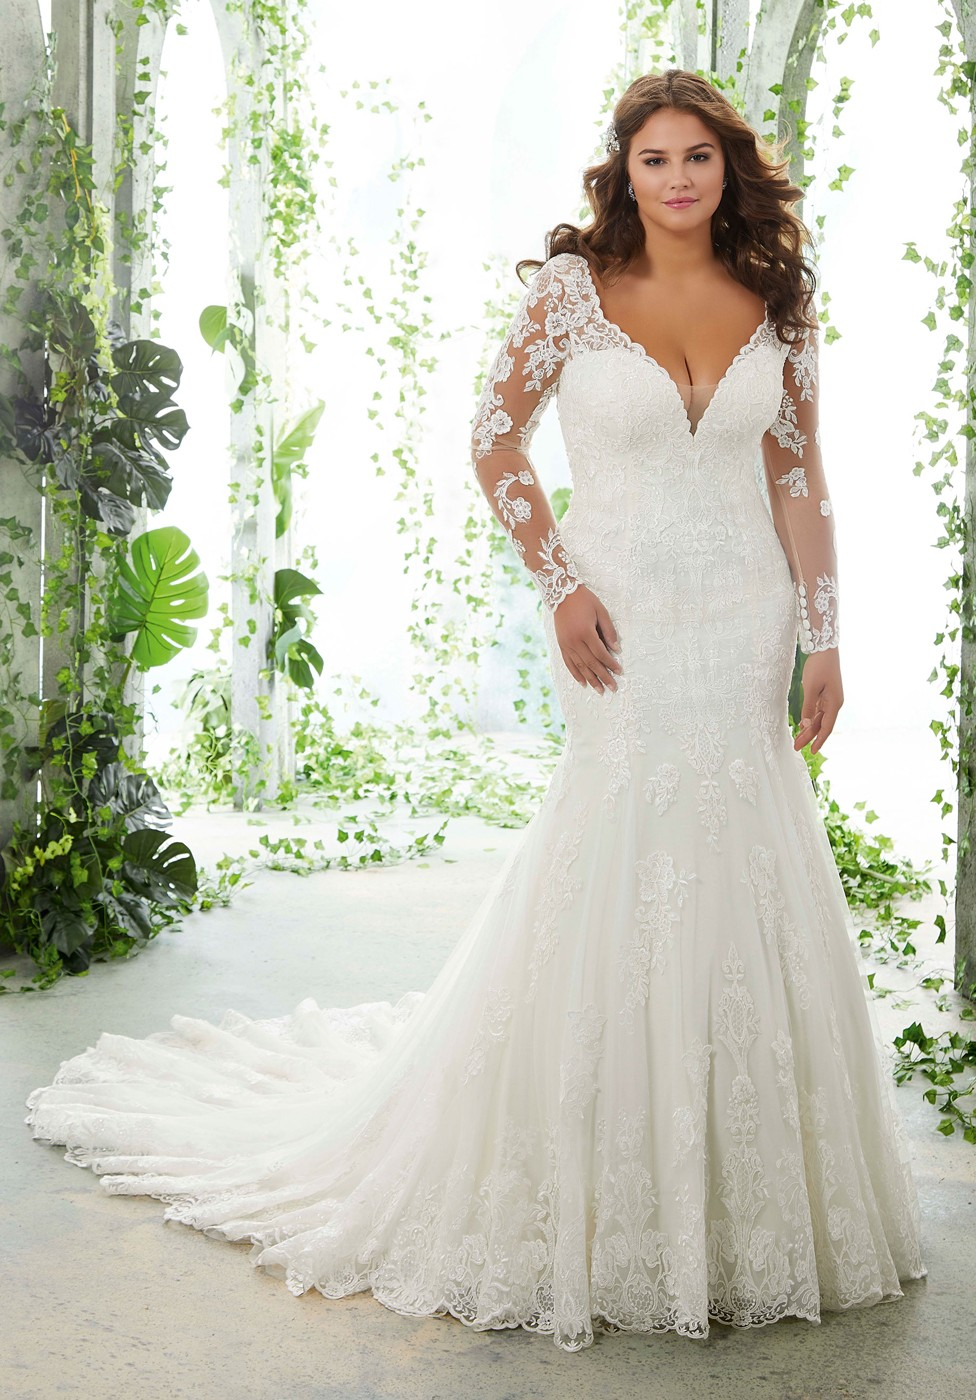 Mori Lee 3251 Paola Dress - MadameBridal.com